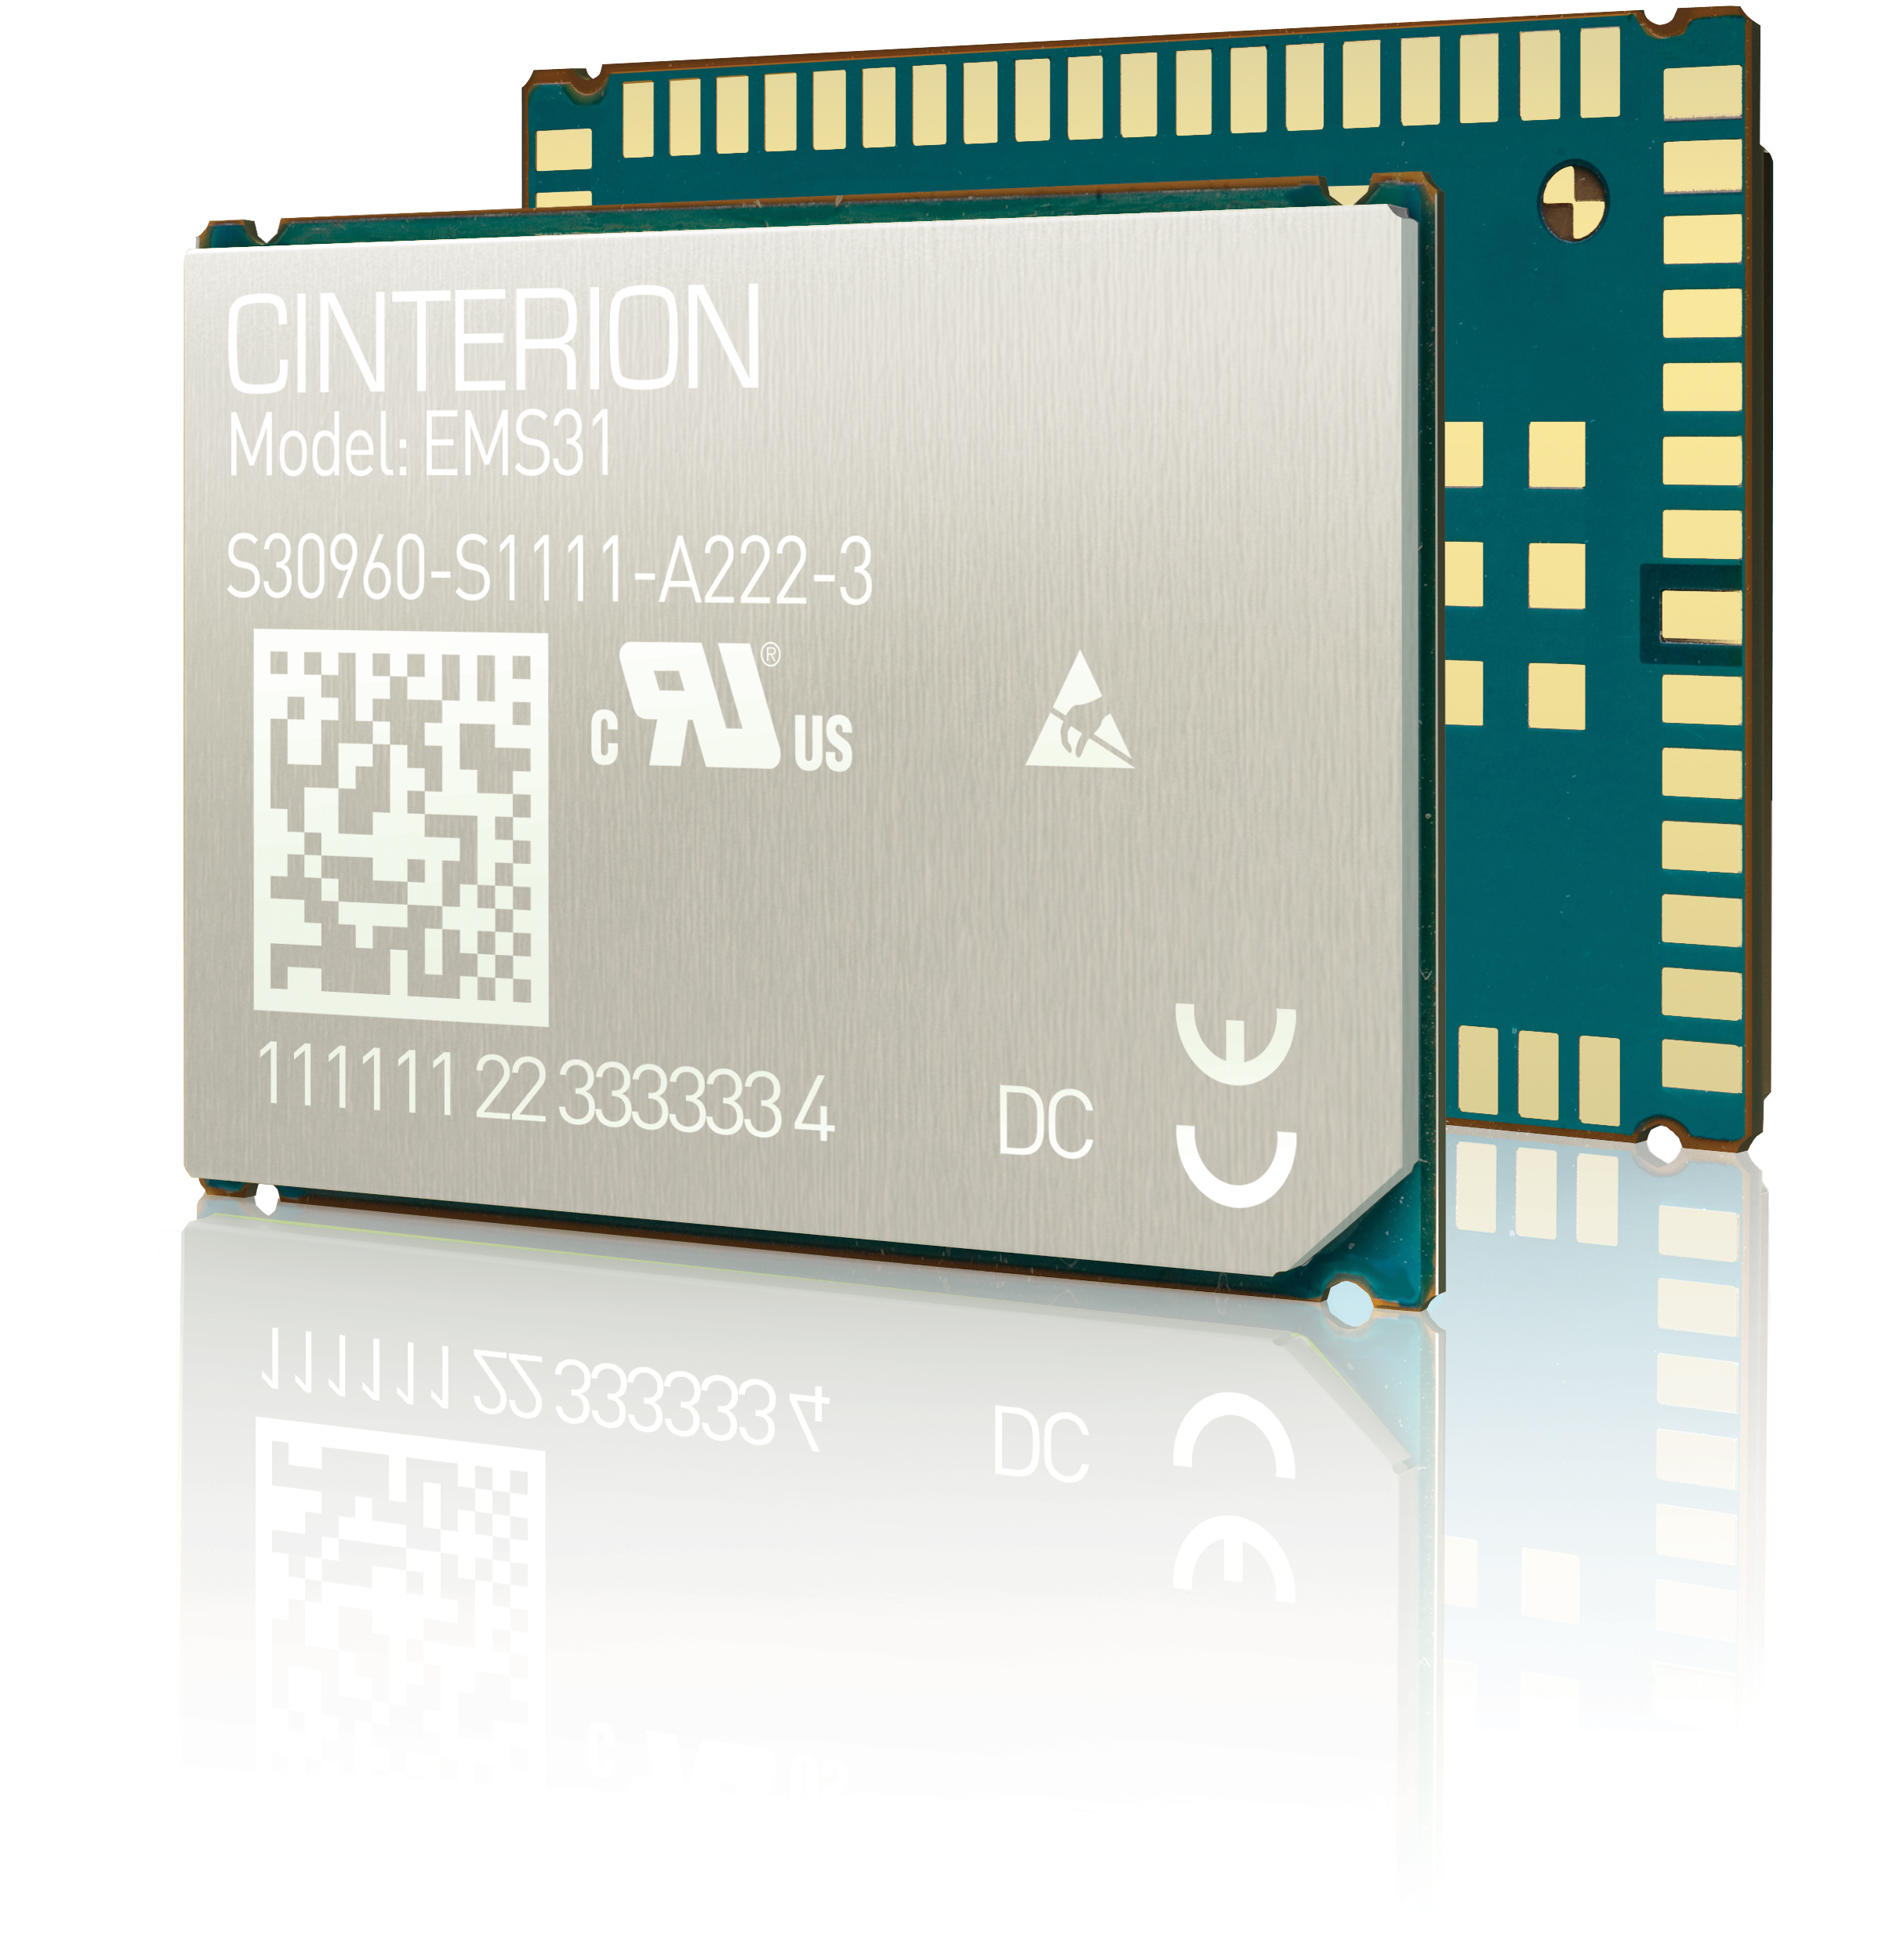 Gemalto and efficient development of high-quality modules